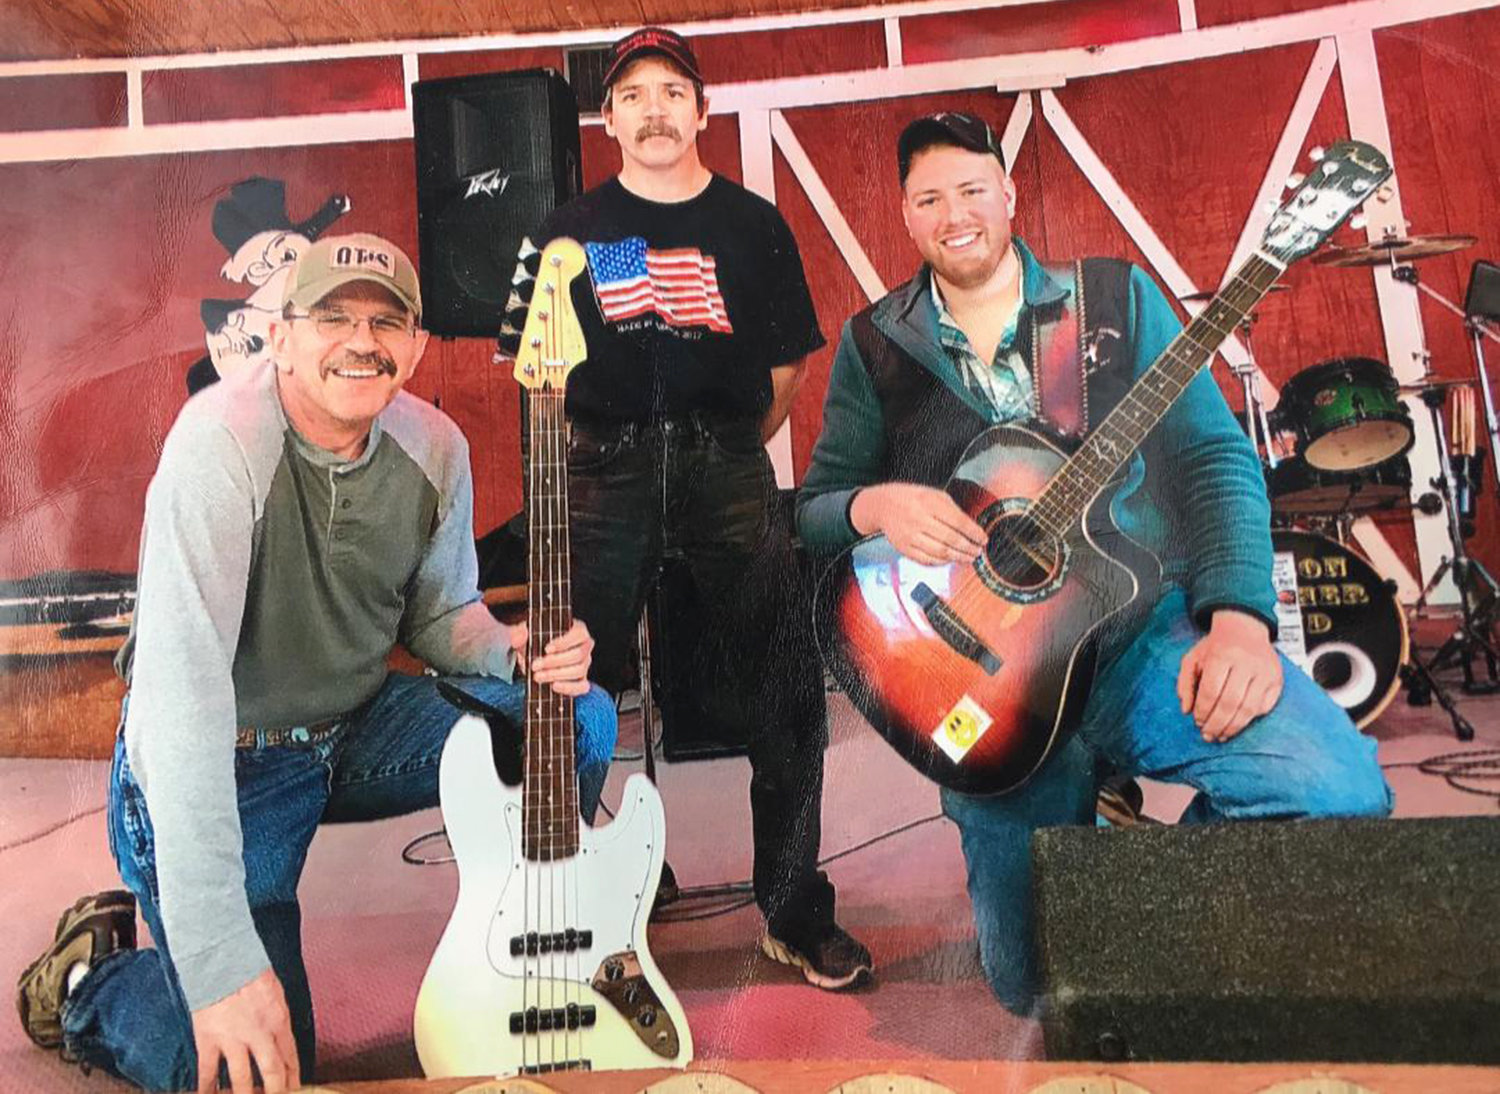 Trinity coffee house in Camden hosts Nelson Brothers Band Nov. 16 - Rome Sentinel